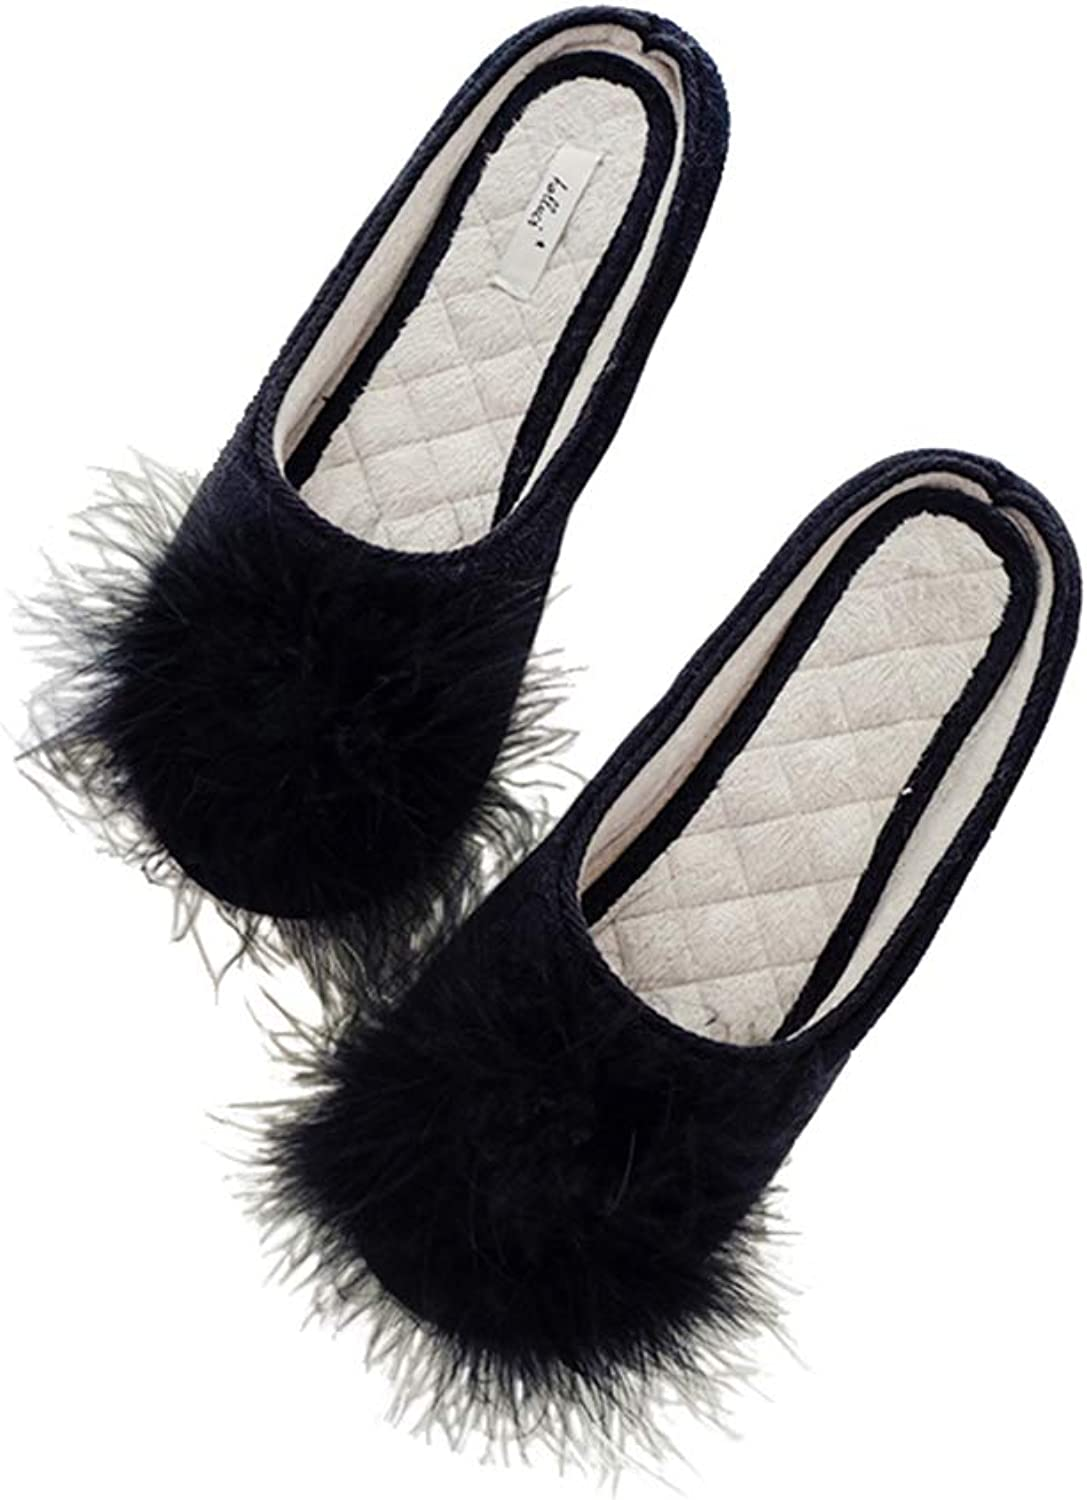 Winter Autumn Warm Women Pompon Slippers Comfortable Indoor House Plat Women Home shoes